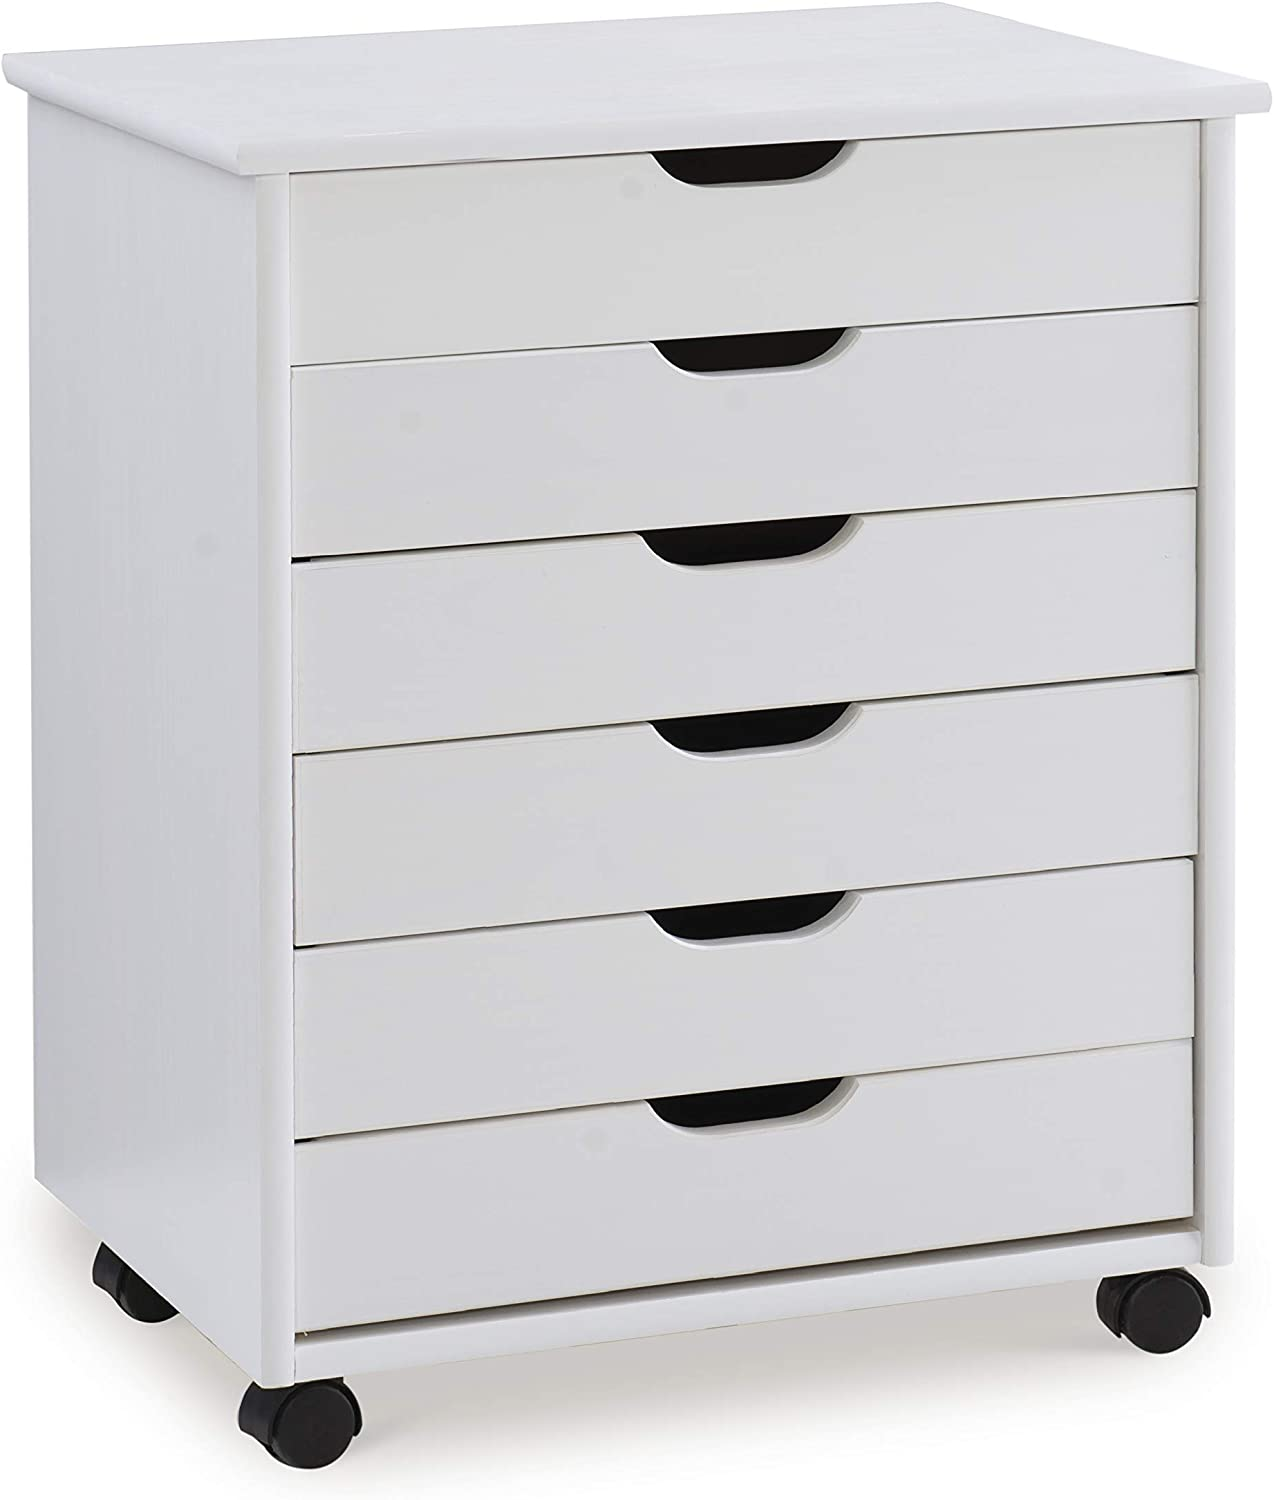 Linon Home Decor Products Corinne Six Drawer Wide, White Wash Rolling Cart